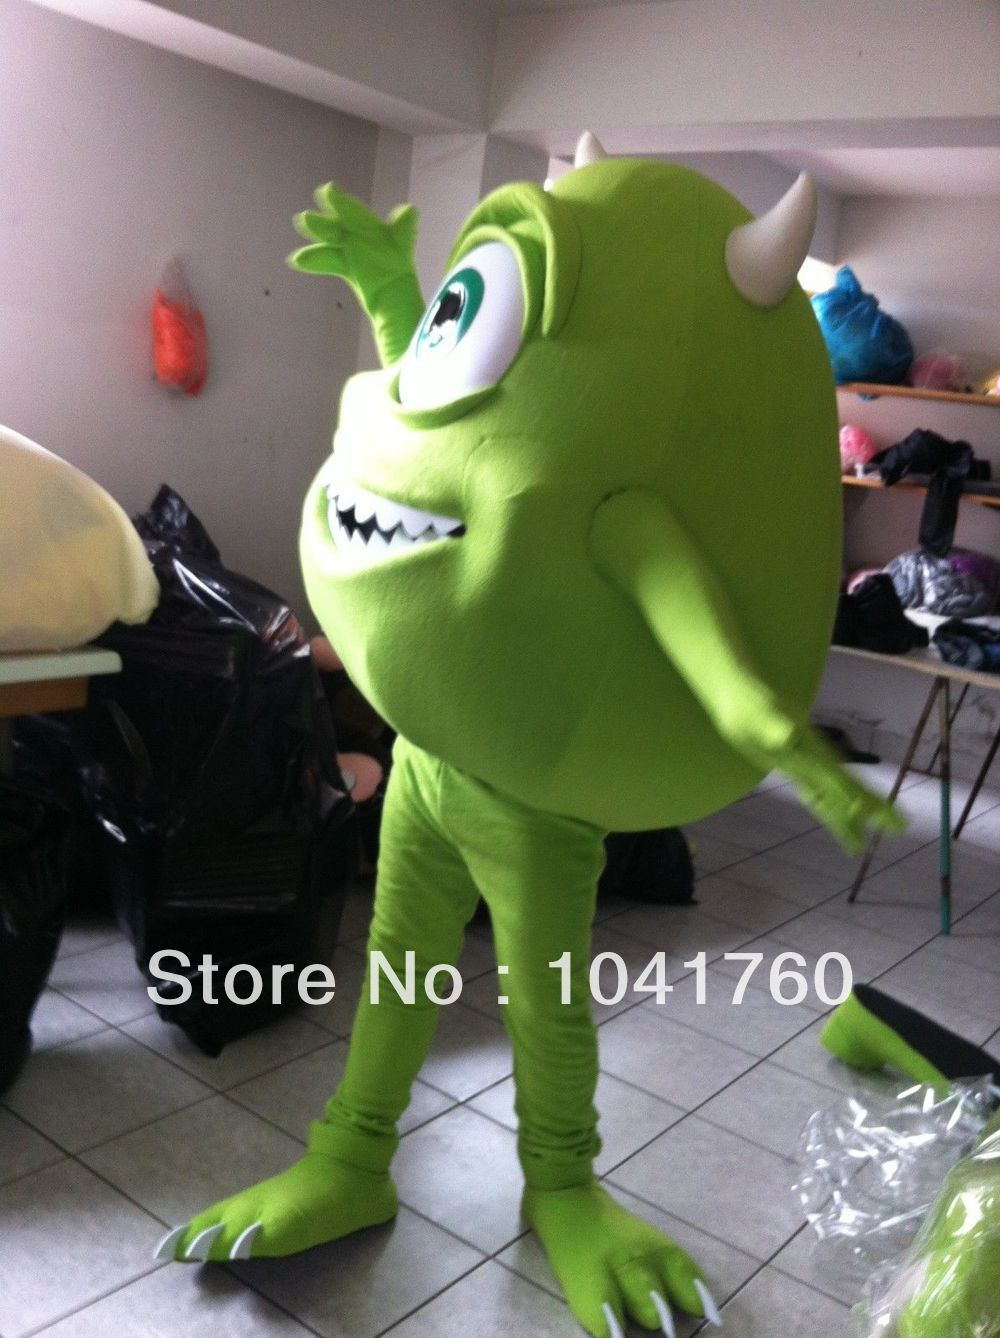 Hot sale New Arrive NEW MIKE MONSTER INC SULLY SULLY GRU MINION Mascot Costume adult Fancy Dress Charactor school mascot costume-in Mascot from Novelty ... & Hot sale New Arrive NEW MIKE MONSTER INC SULLY SULLY GRU MINION ...